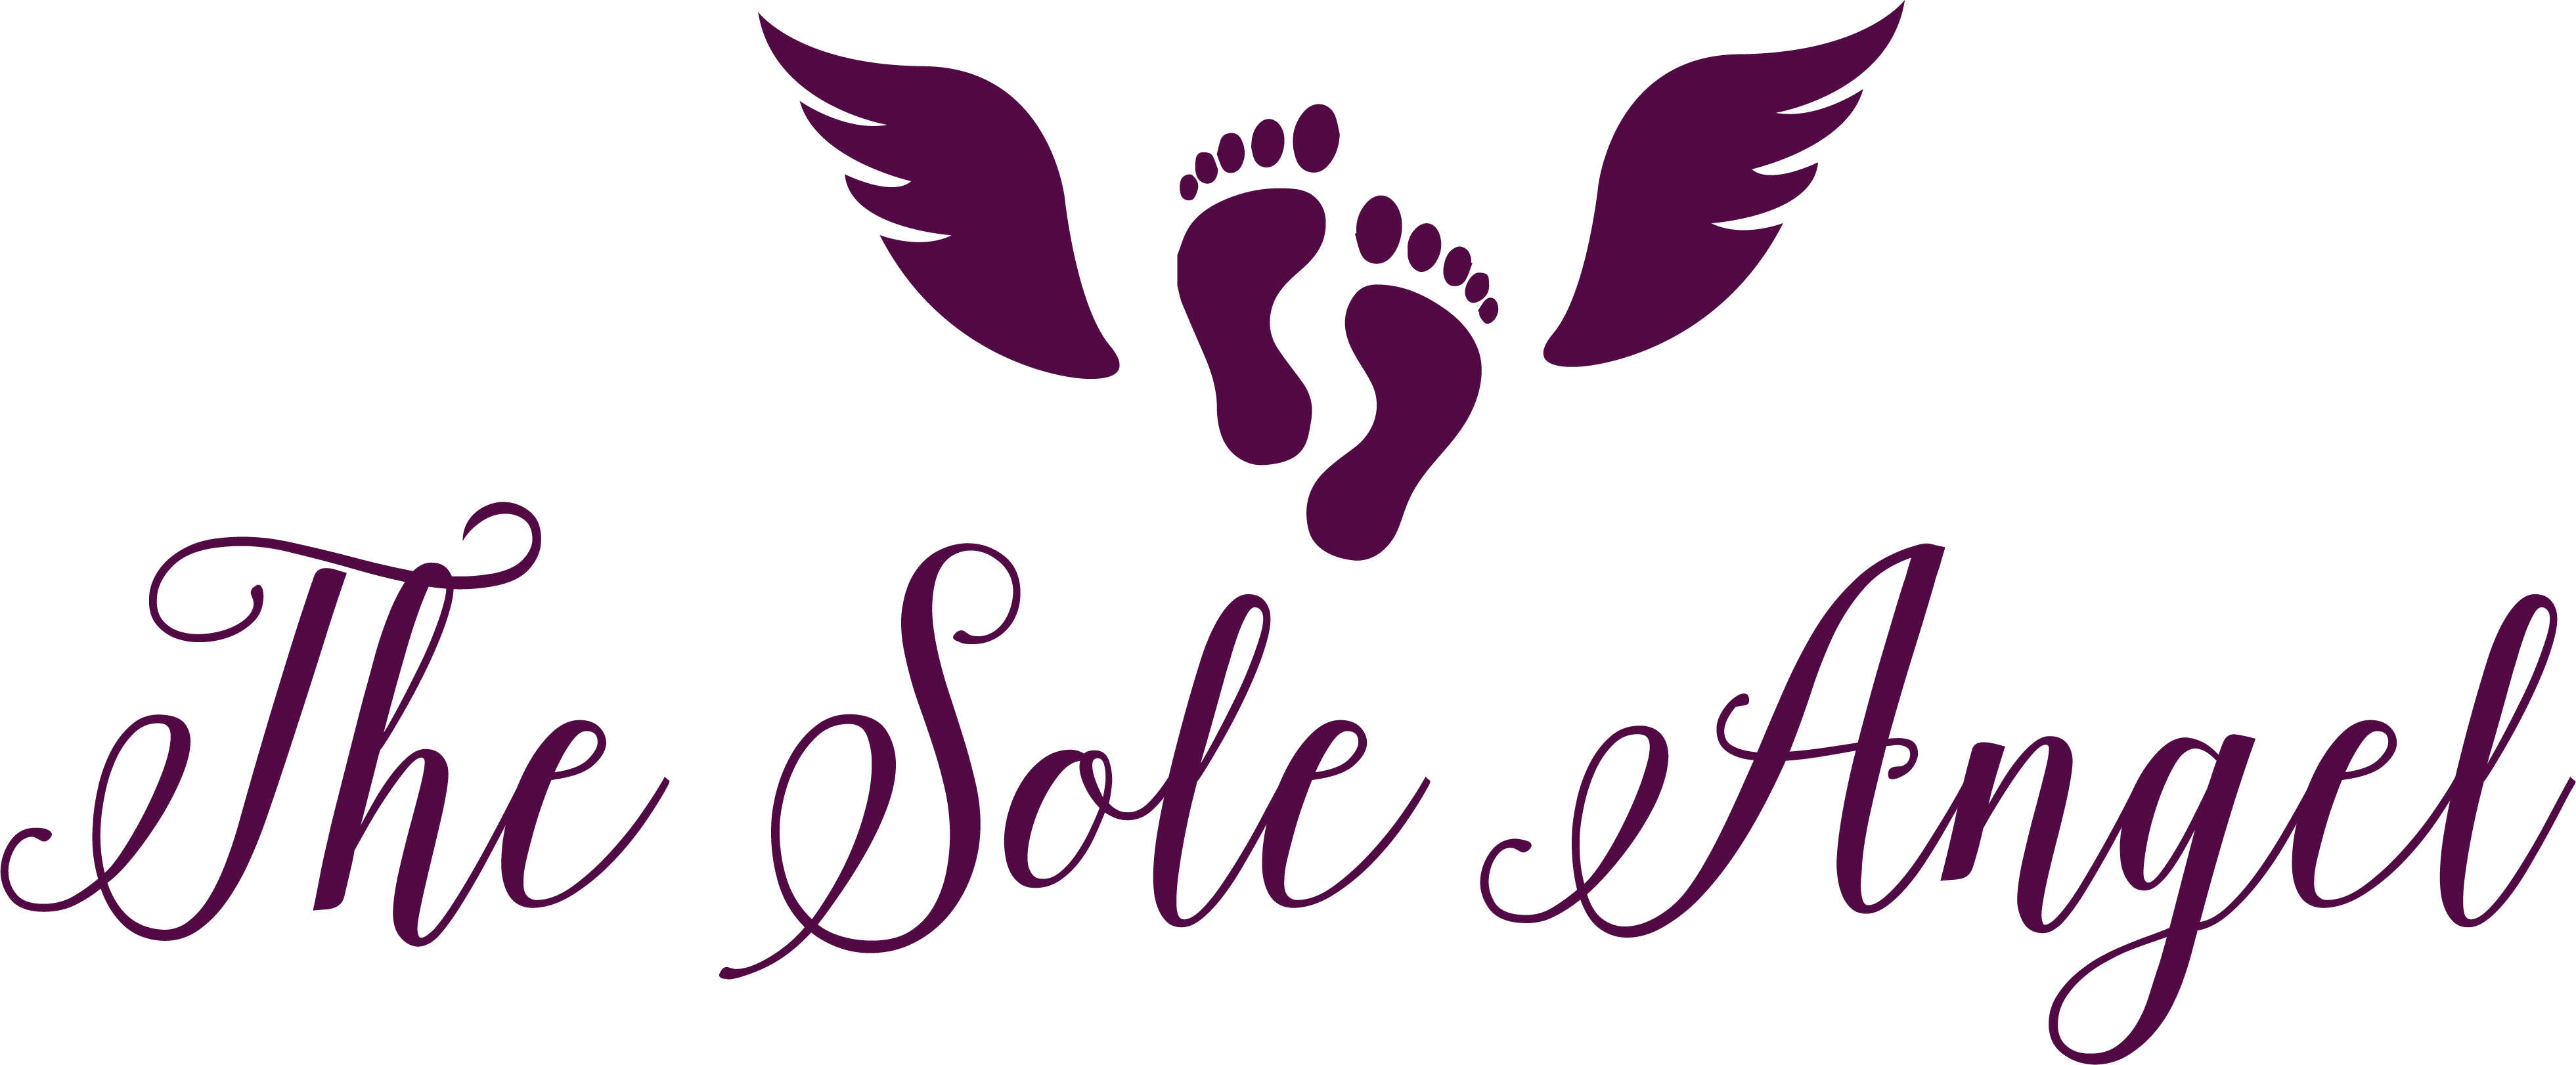 The Sole Angel Logo